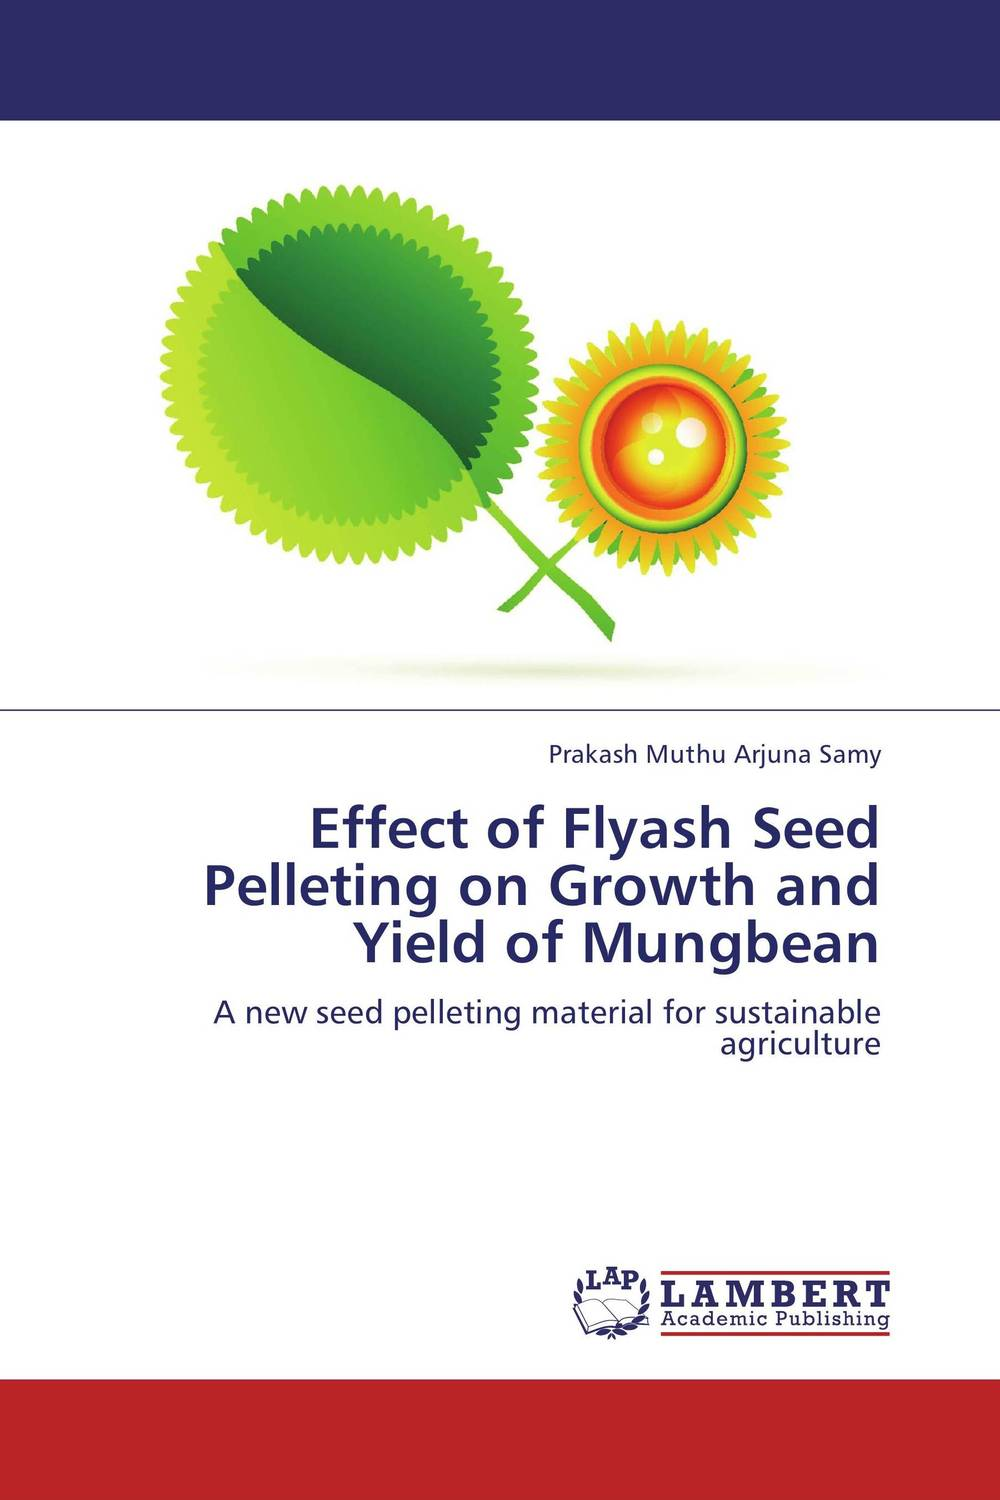 Effect of Flyash Seed Pelleting on Growth and Yield of Mungbean surfactants effect on hardness of dental stone and investment material